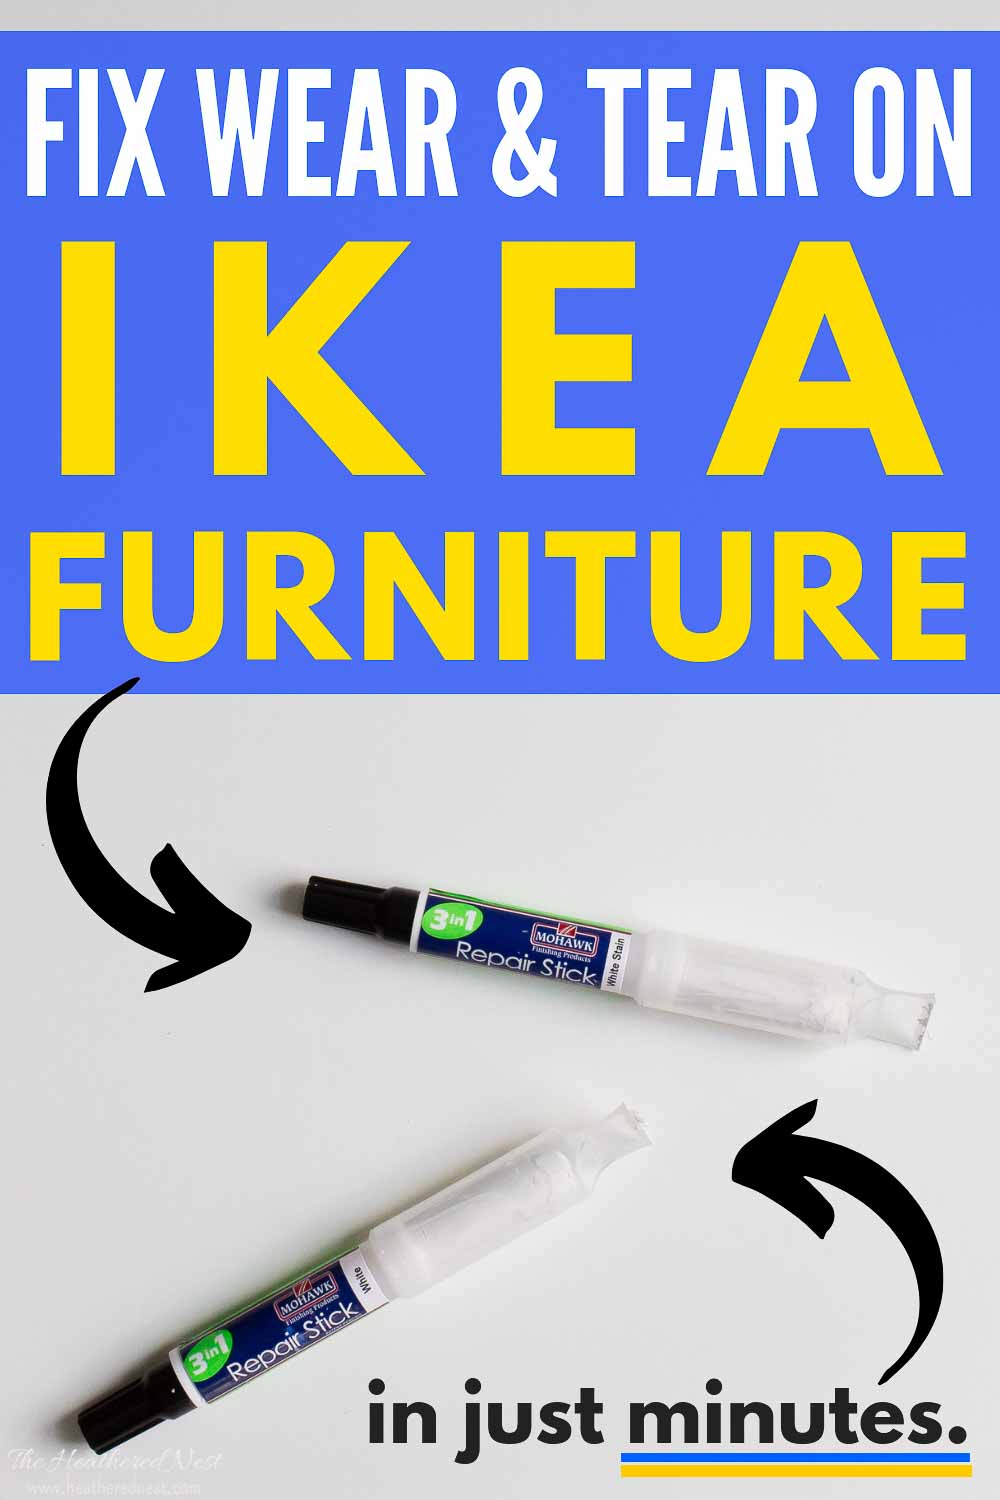 You can repair your Ikea furniture in MINUTES with this 3-in-1 paint touch up repair stick from Mohawk. Made specifically to match Ikea furniture paint and finishes! It was SUPER EASY to use!